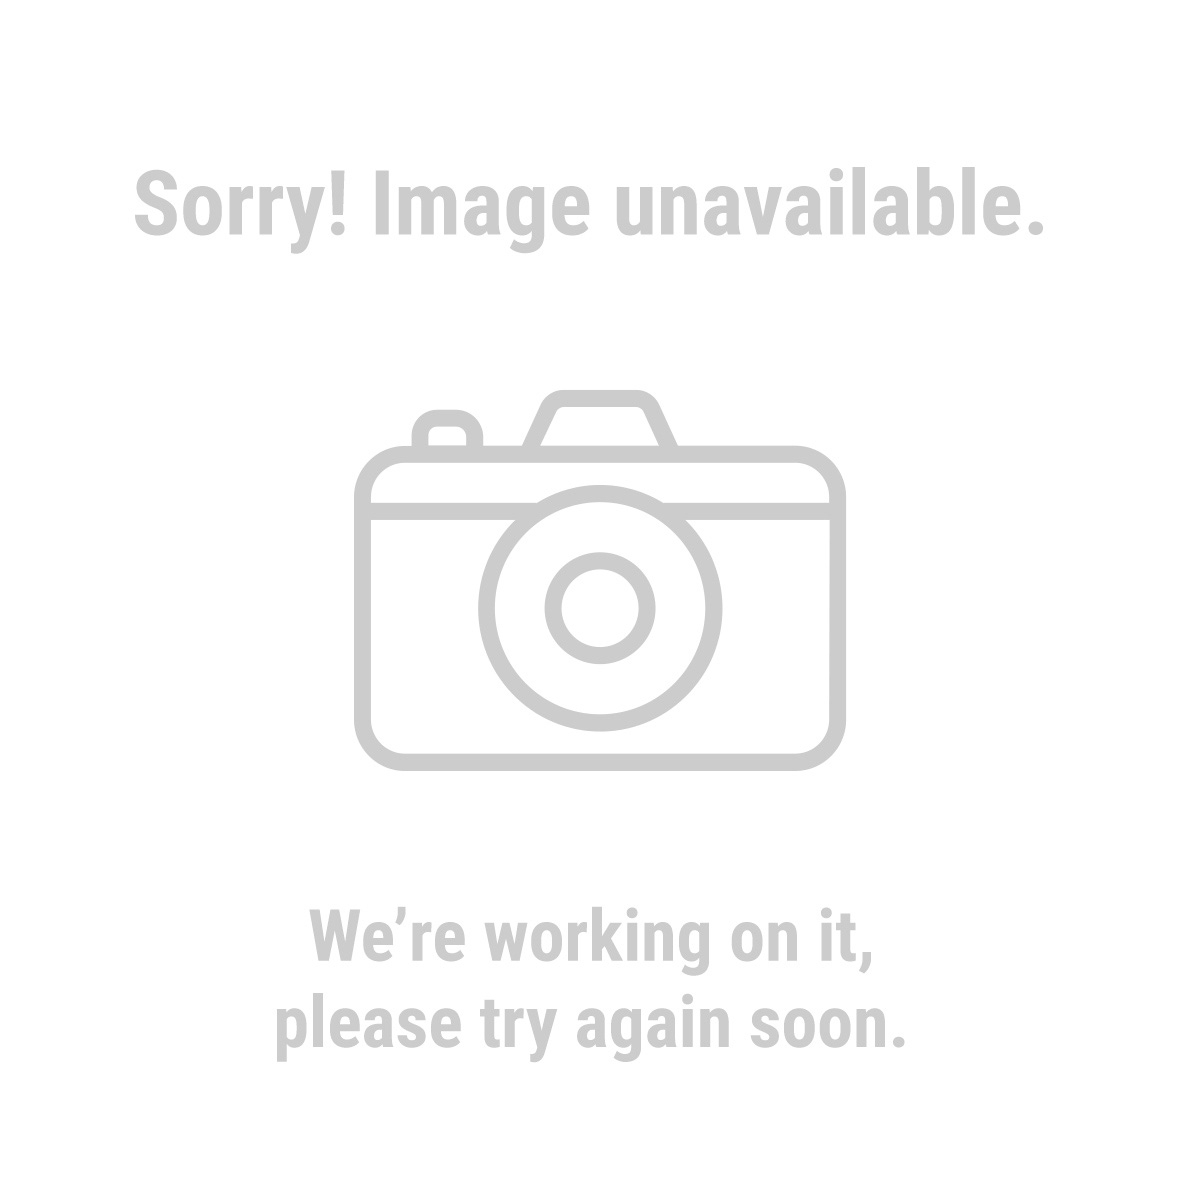 CoverPro 62898 10 ft. x 10 ft. Popup Canopy